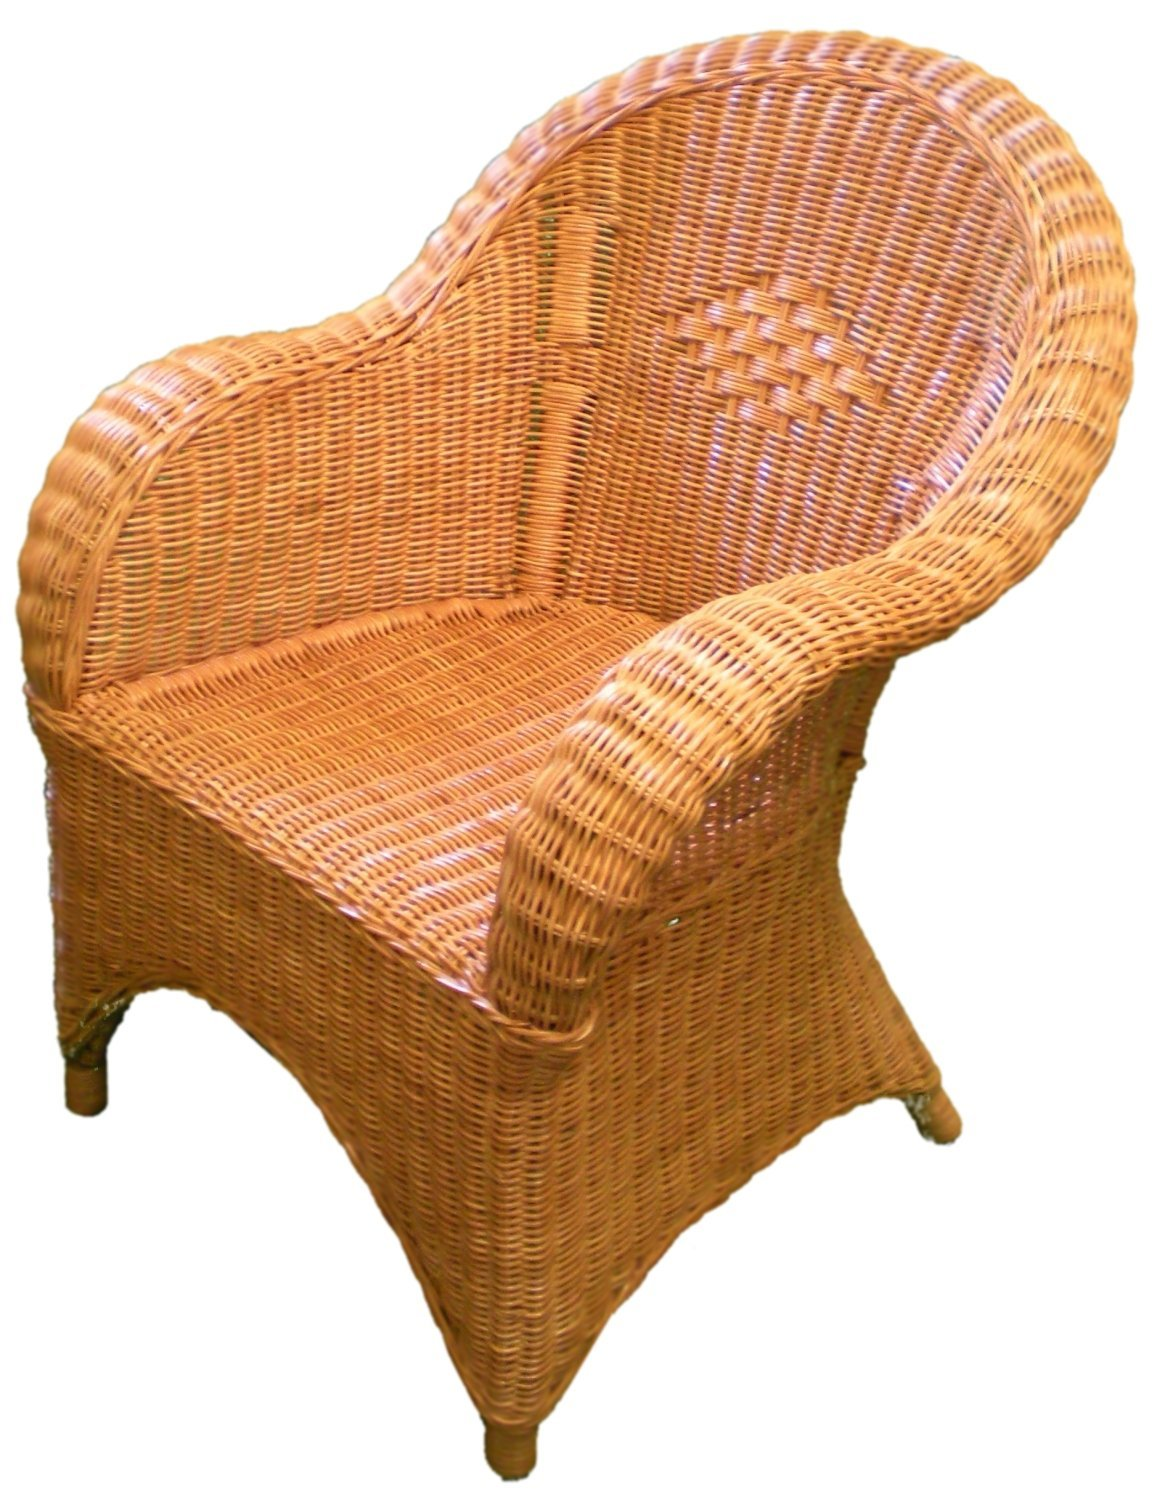 Candy Brown Wicker Chair